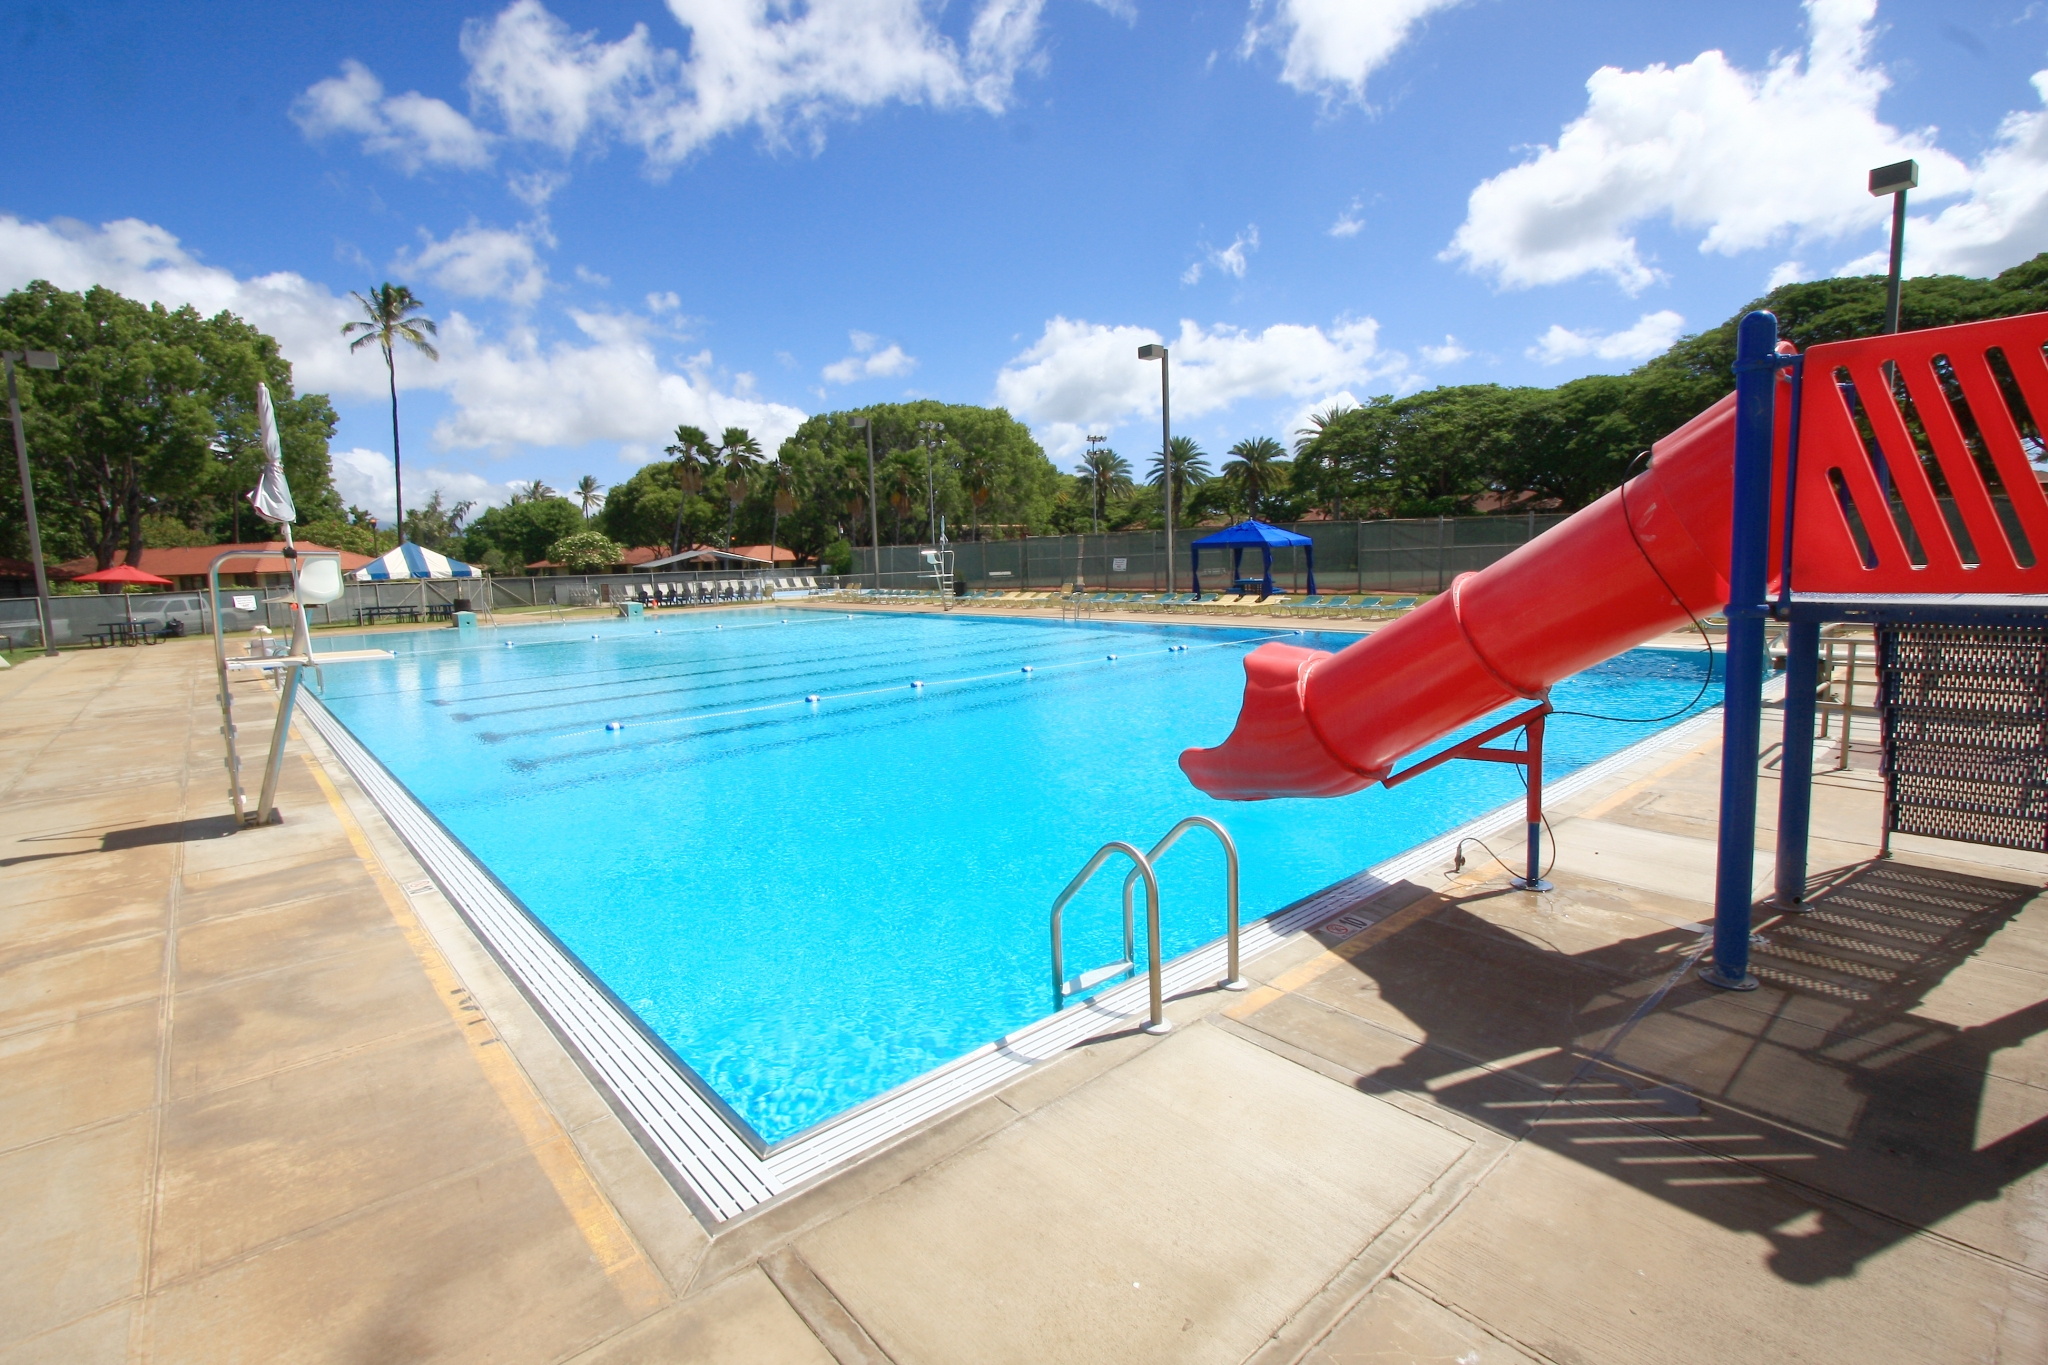 Hickam Communities | Hickam Fitness Center | MWR | Swimming Pool